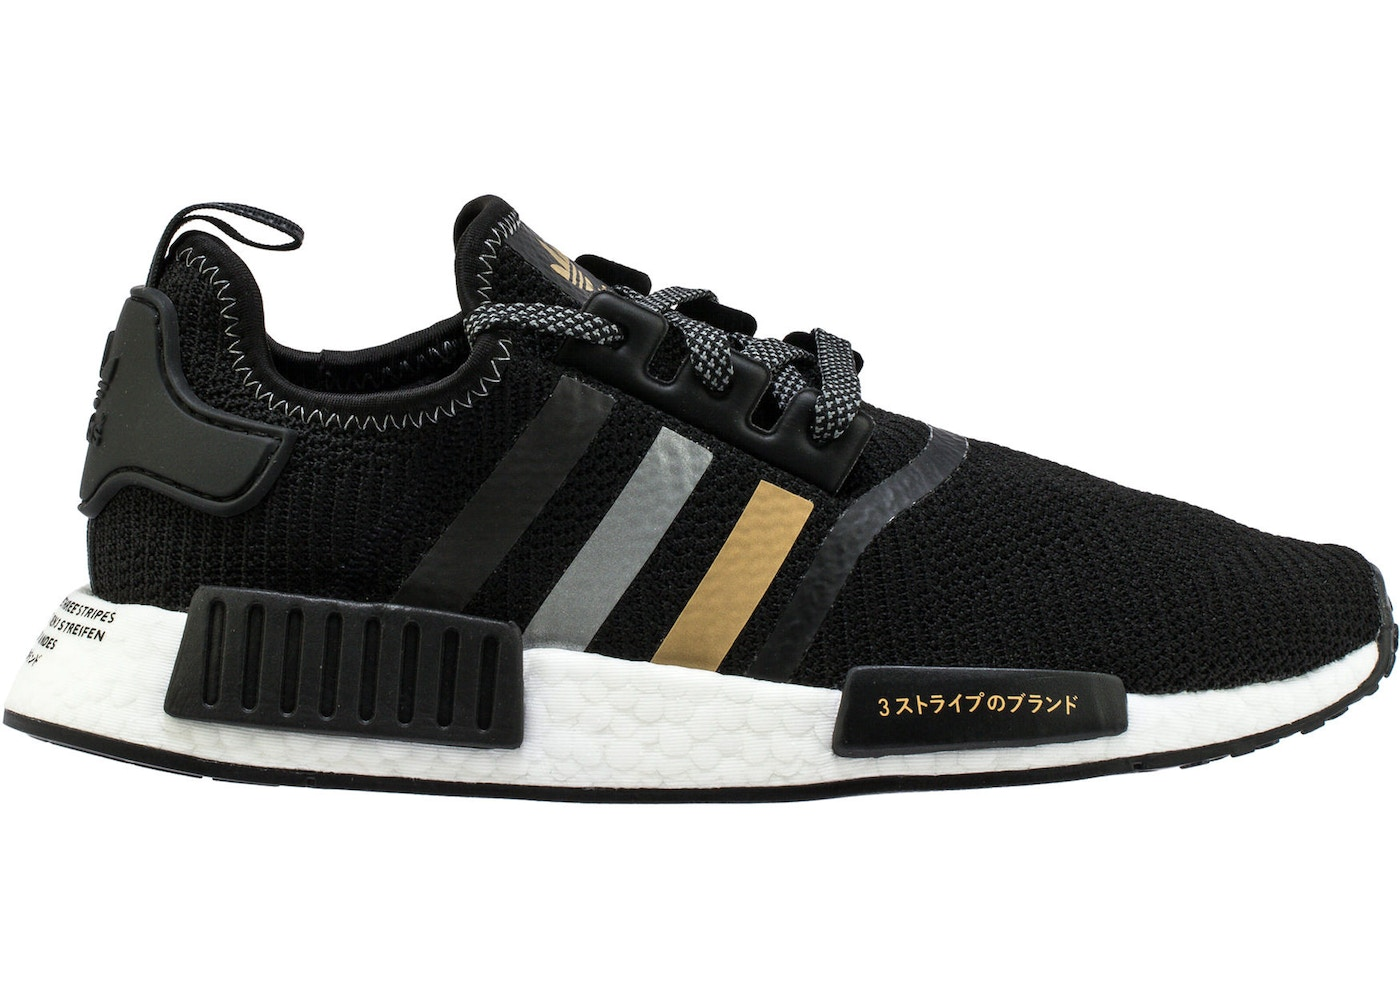 Adidas Nmd R1 Shoe Palace Black And Gold Eh2749